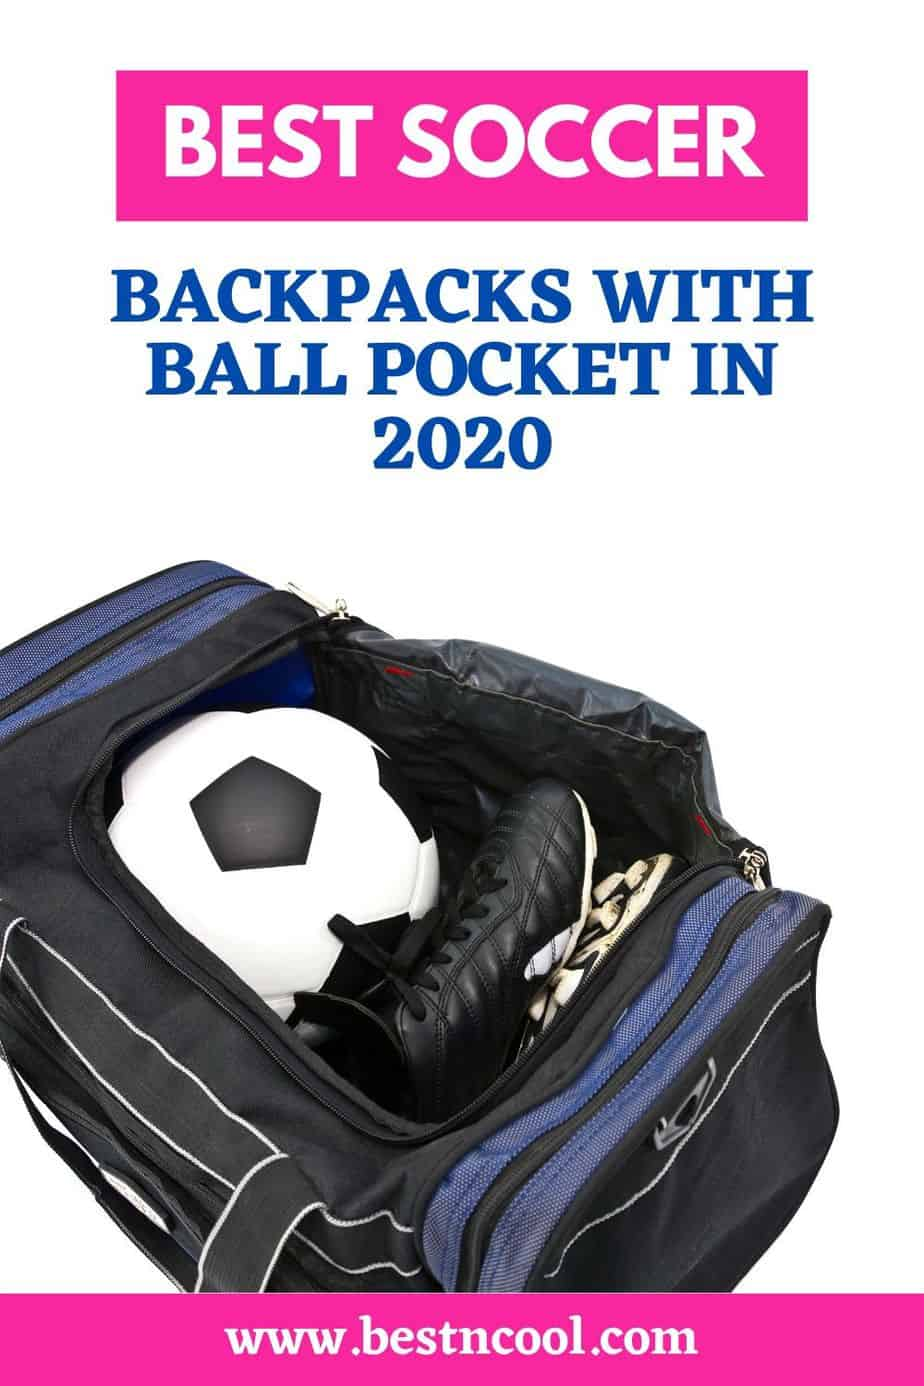 Soccer Backpack with Ball Pocket